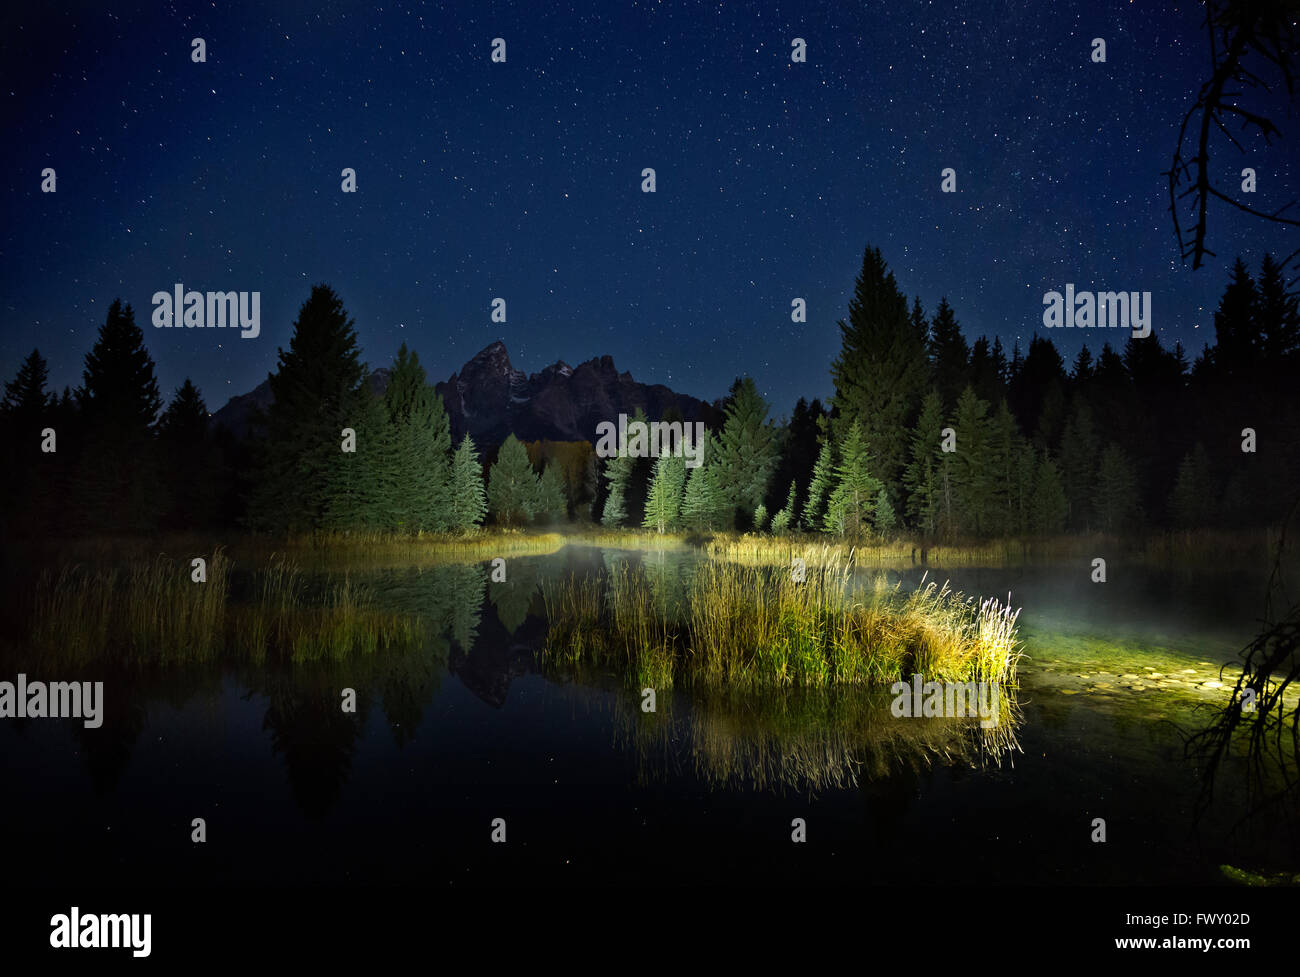 WYOMING - Stars in early morning sky at Schwabacher Landing on the Snake River in Grand Teton National Park. - Stock Image